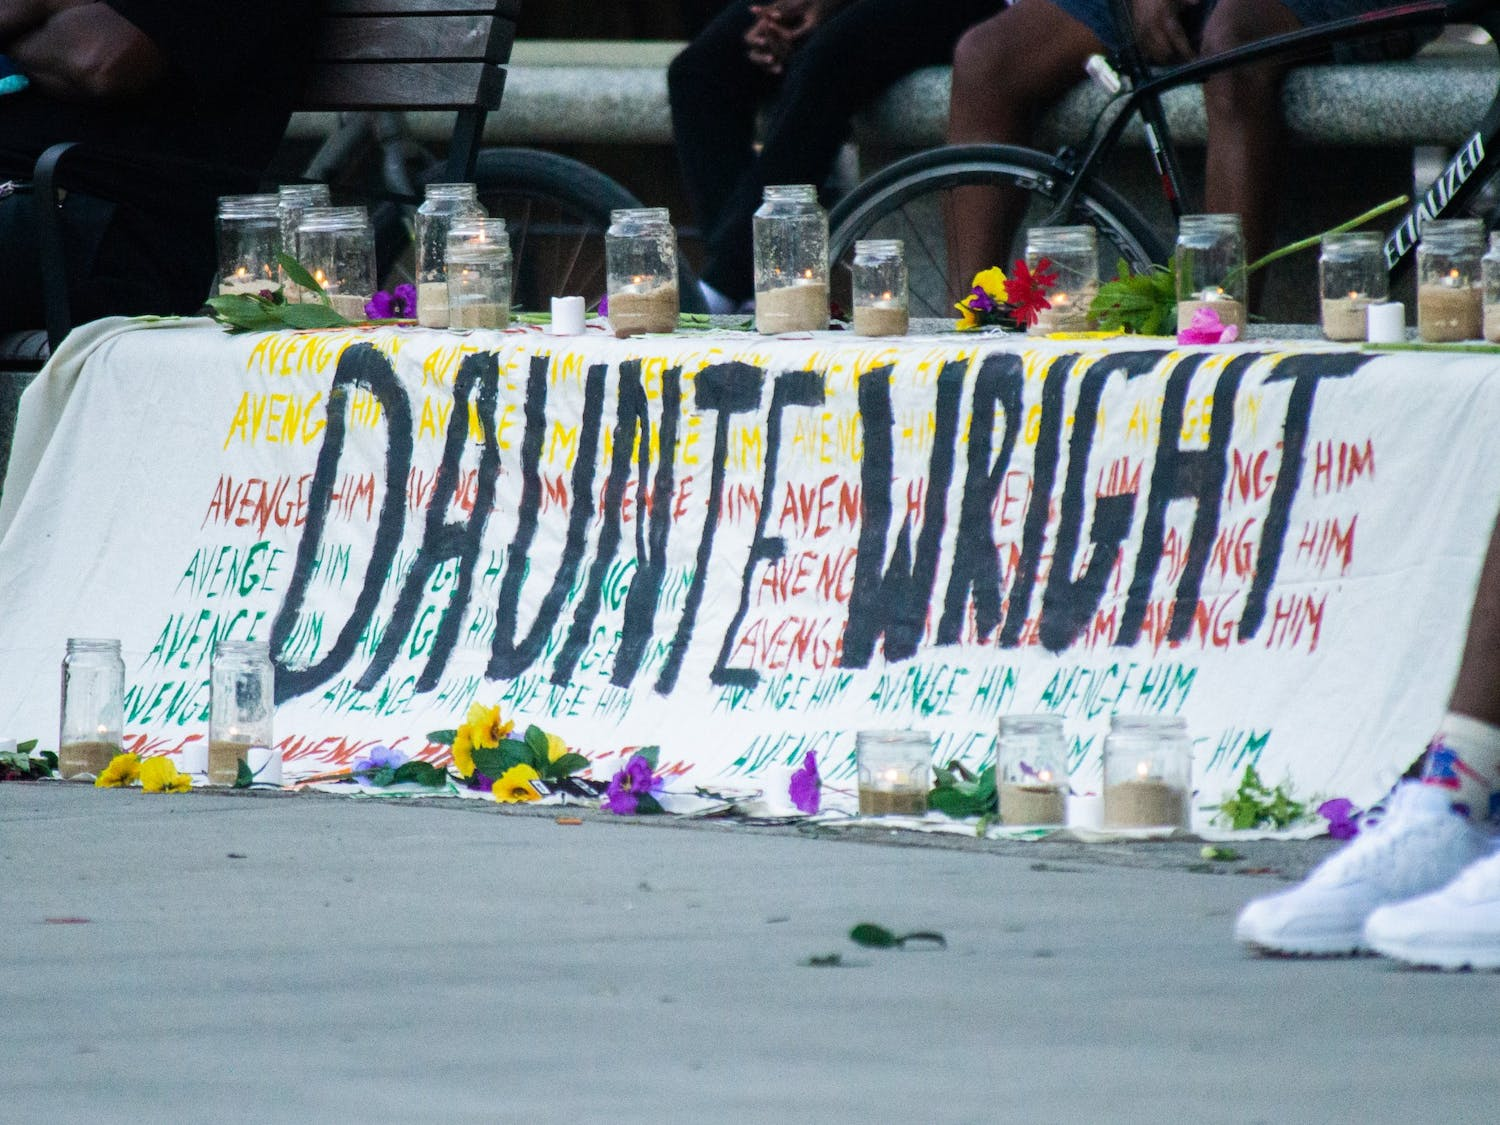 A banner with the words 'avenge him' written behind Daunte Wright's name sits at the front of a community organized vigil in memory of Daunte Wright and Jaida Peterson. The vigil took place in Moore Square Park in downtown Raleigh on Sunday Apr. 18, 2021.